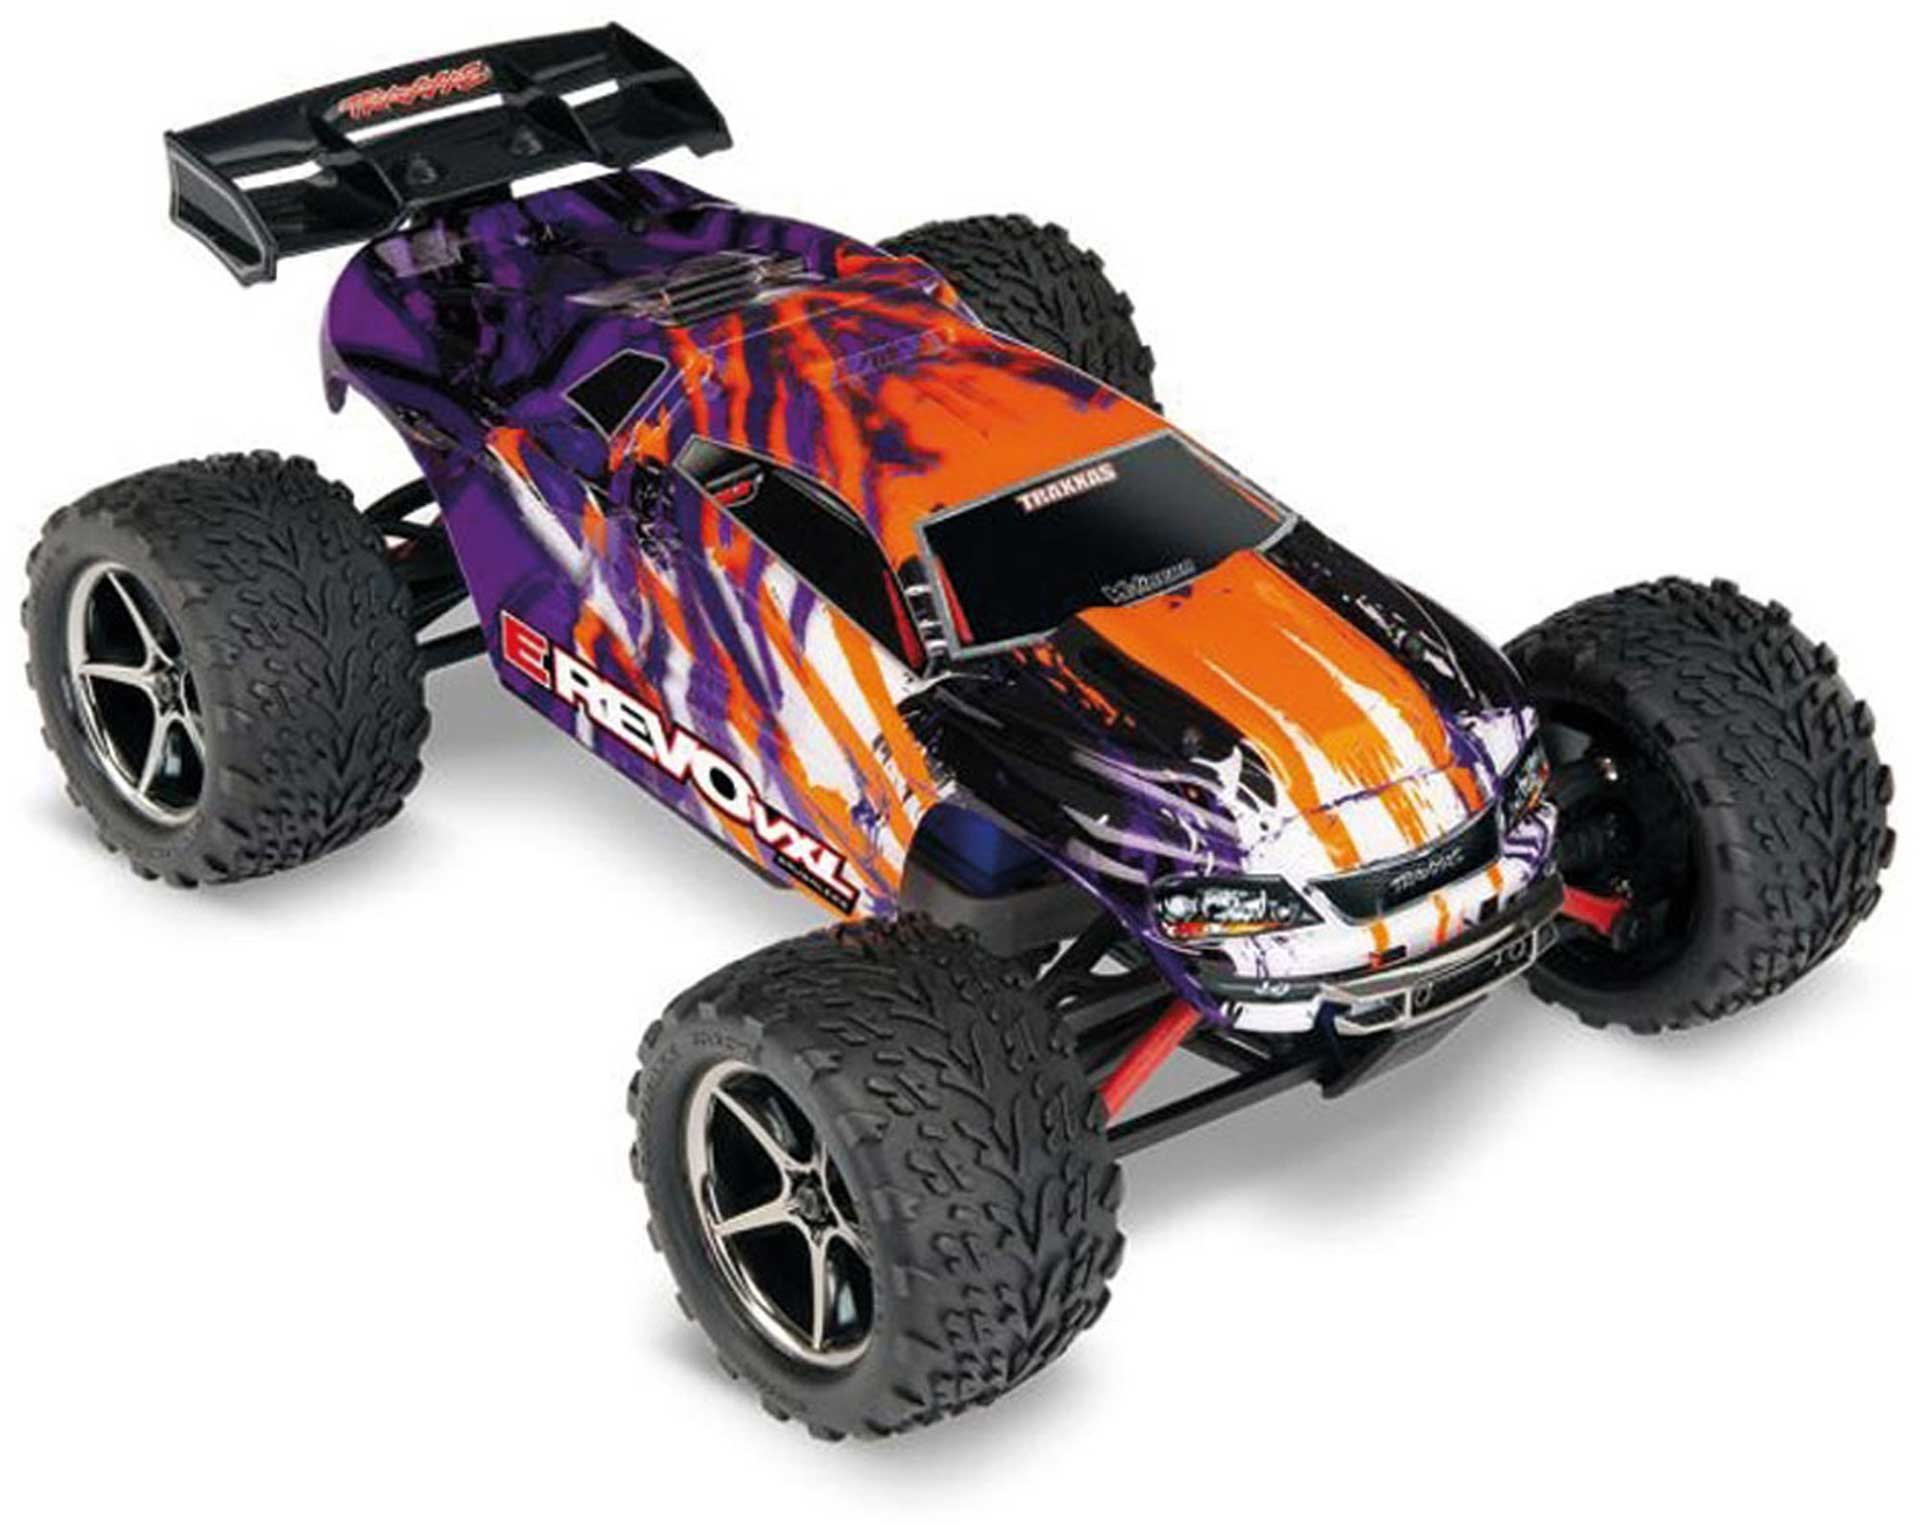 TRAXXAS E-REVO 4X4 VXL PURBLE RTR RACING TRUCK 1/16 BRUSHLESS INCL. 12V CHARGER + RECHARGEABLE BATTERY